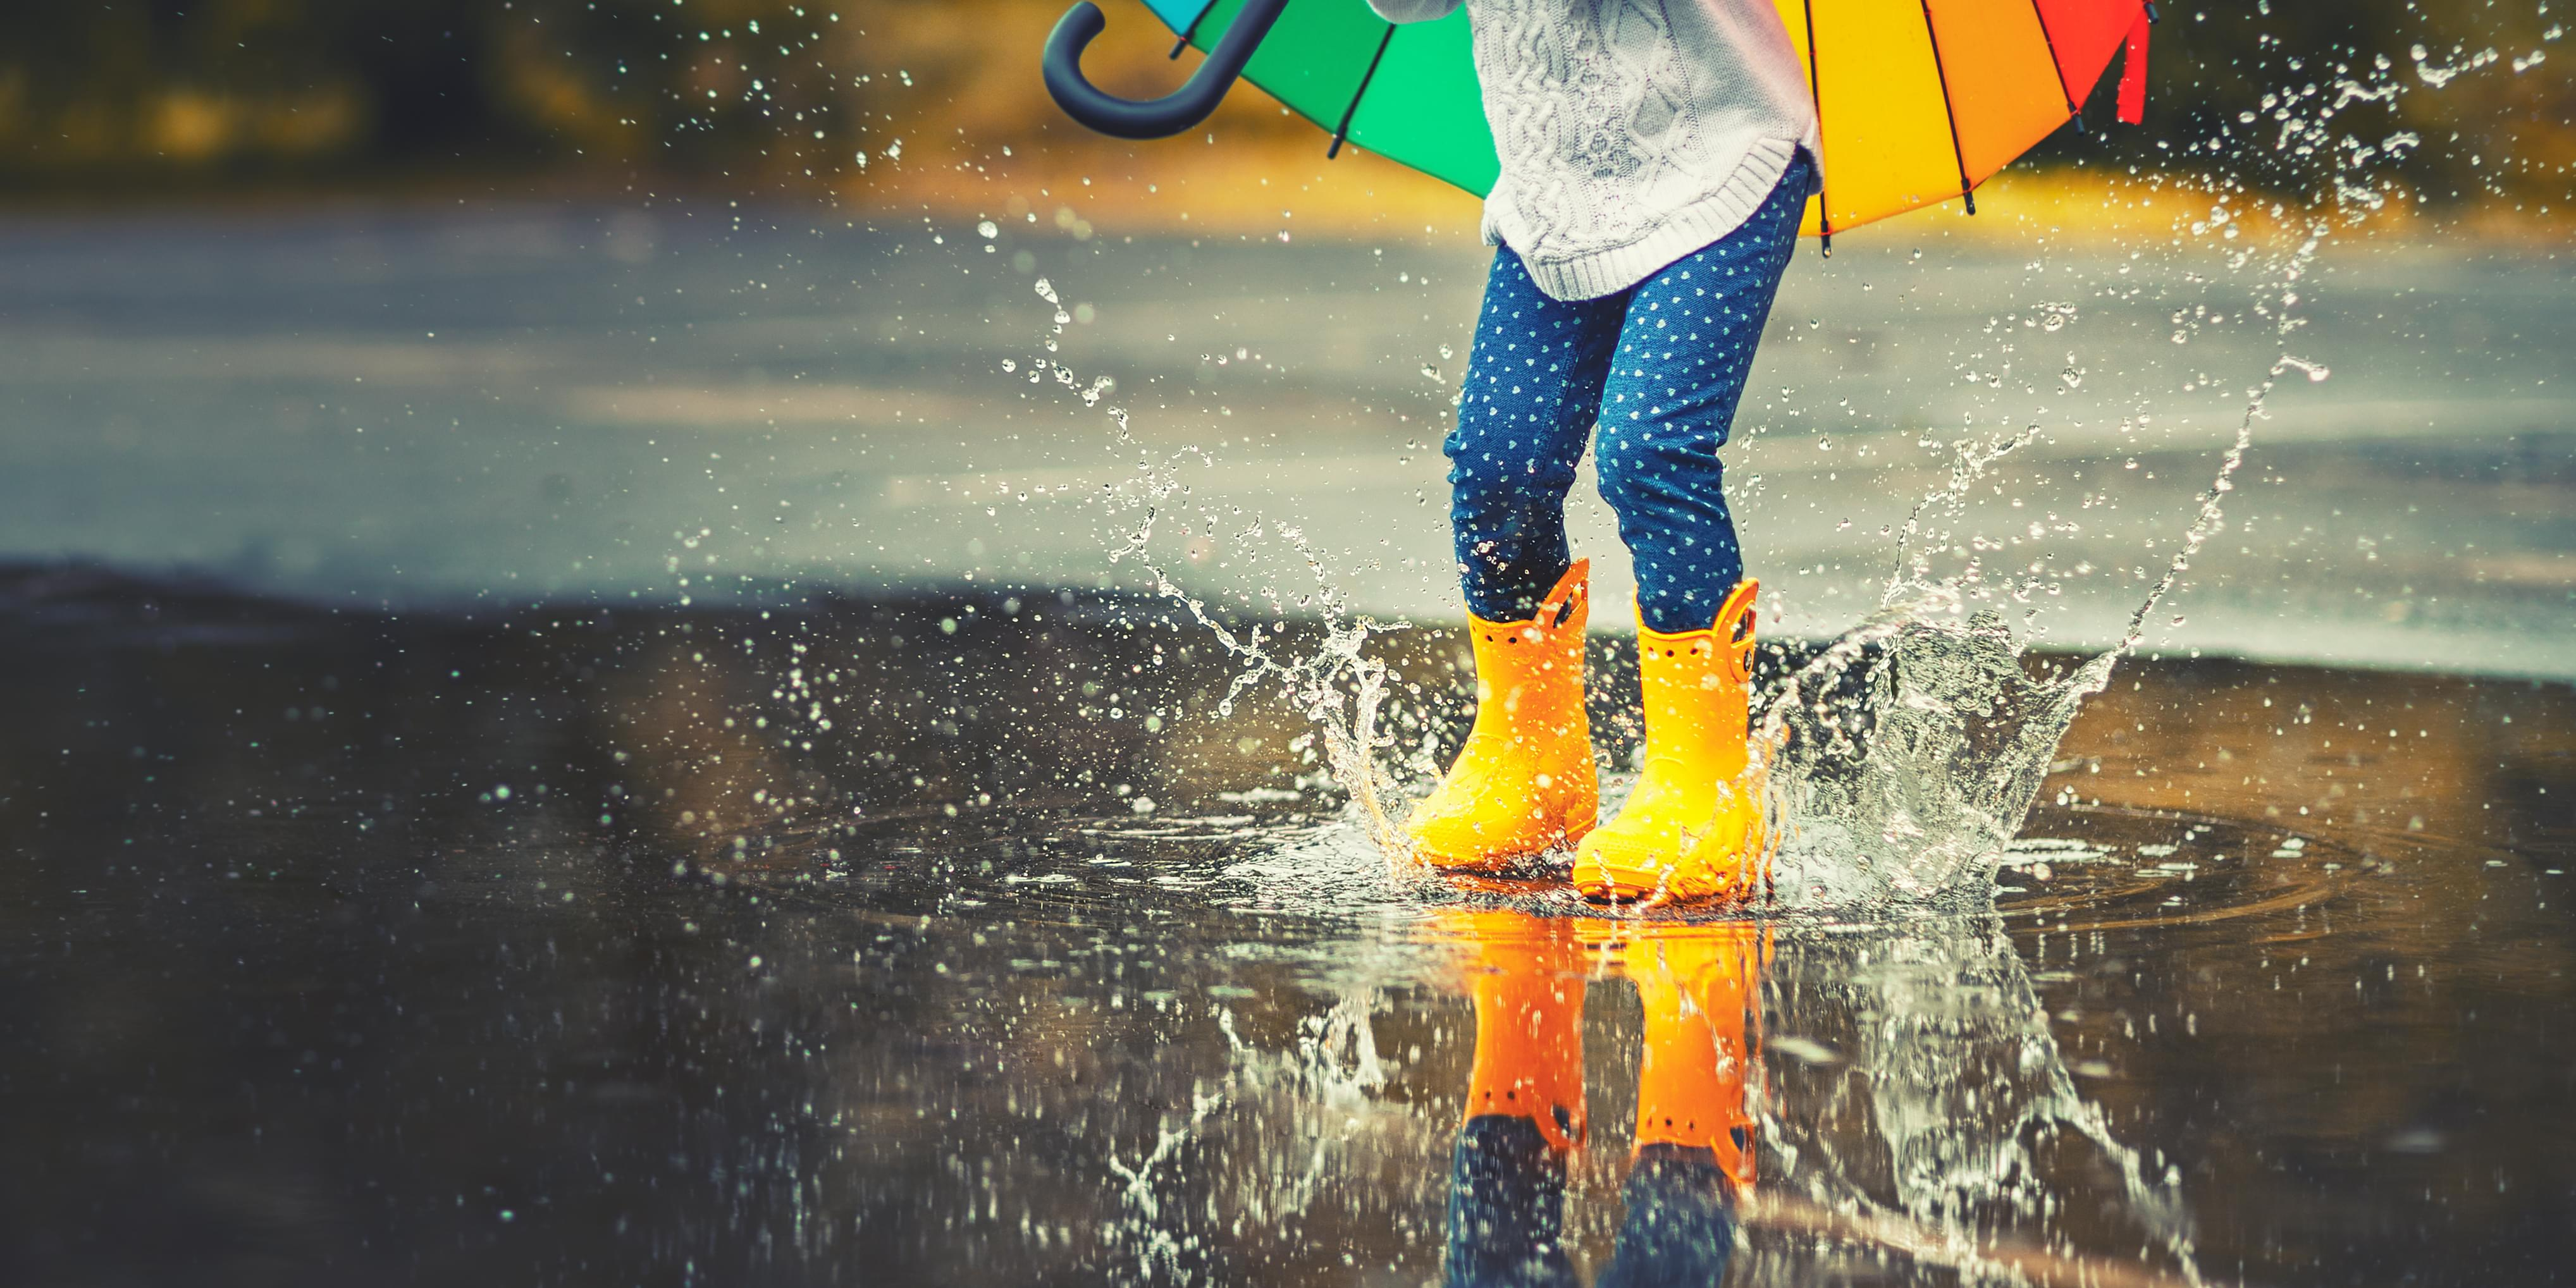 Feet,Of,Child,In,Yellow,Rubber,Boots,Jumping,Over,A